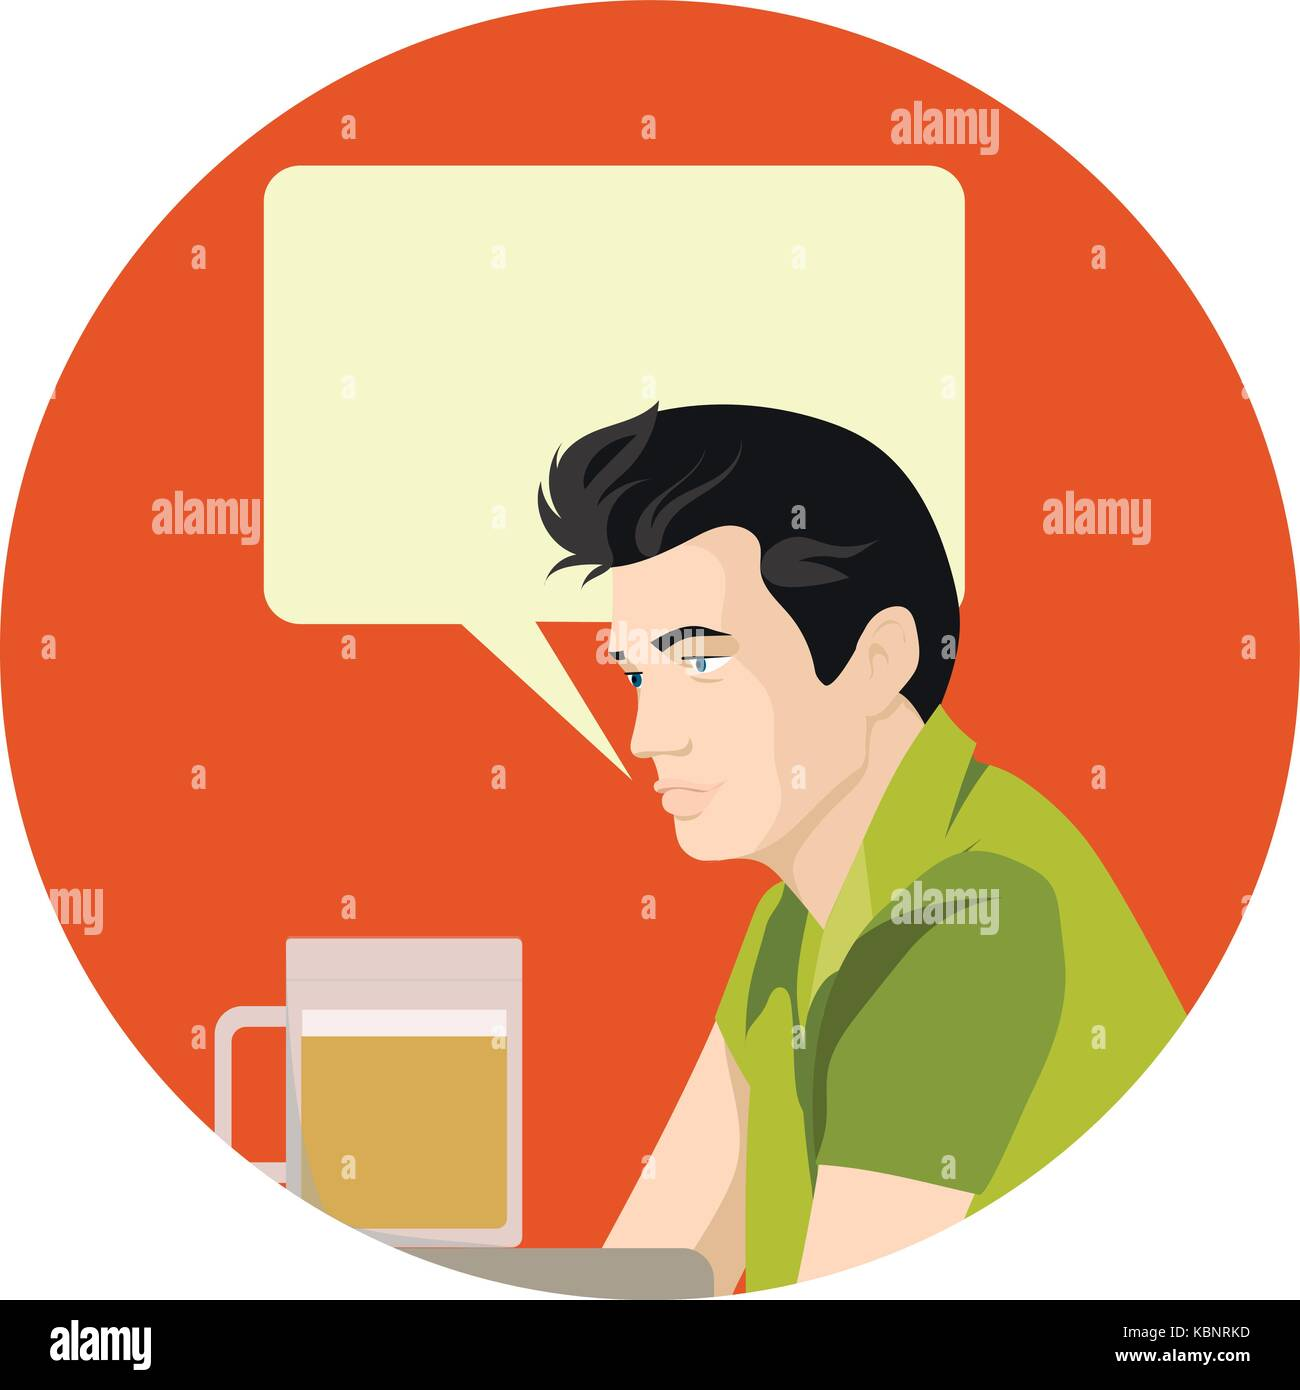 Man holding beer. Cartoon Vector Illustration, ads, banner, sign with specchbubble place for text - Stock Image